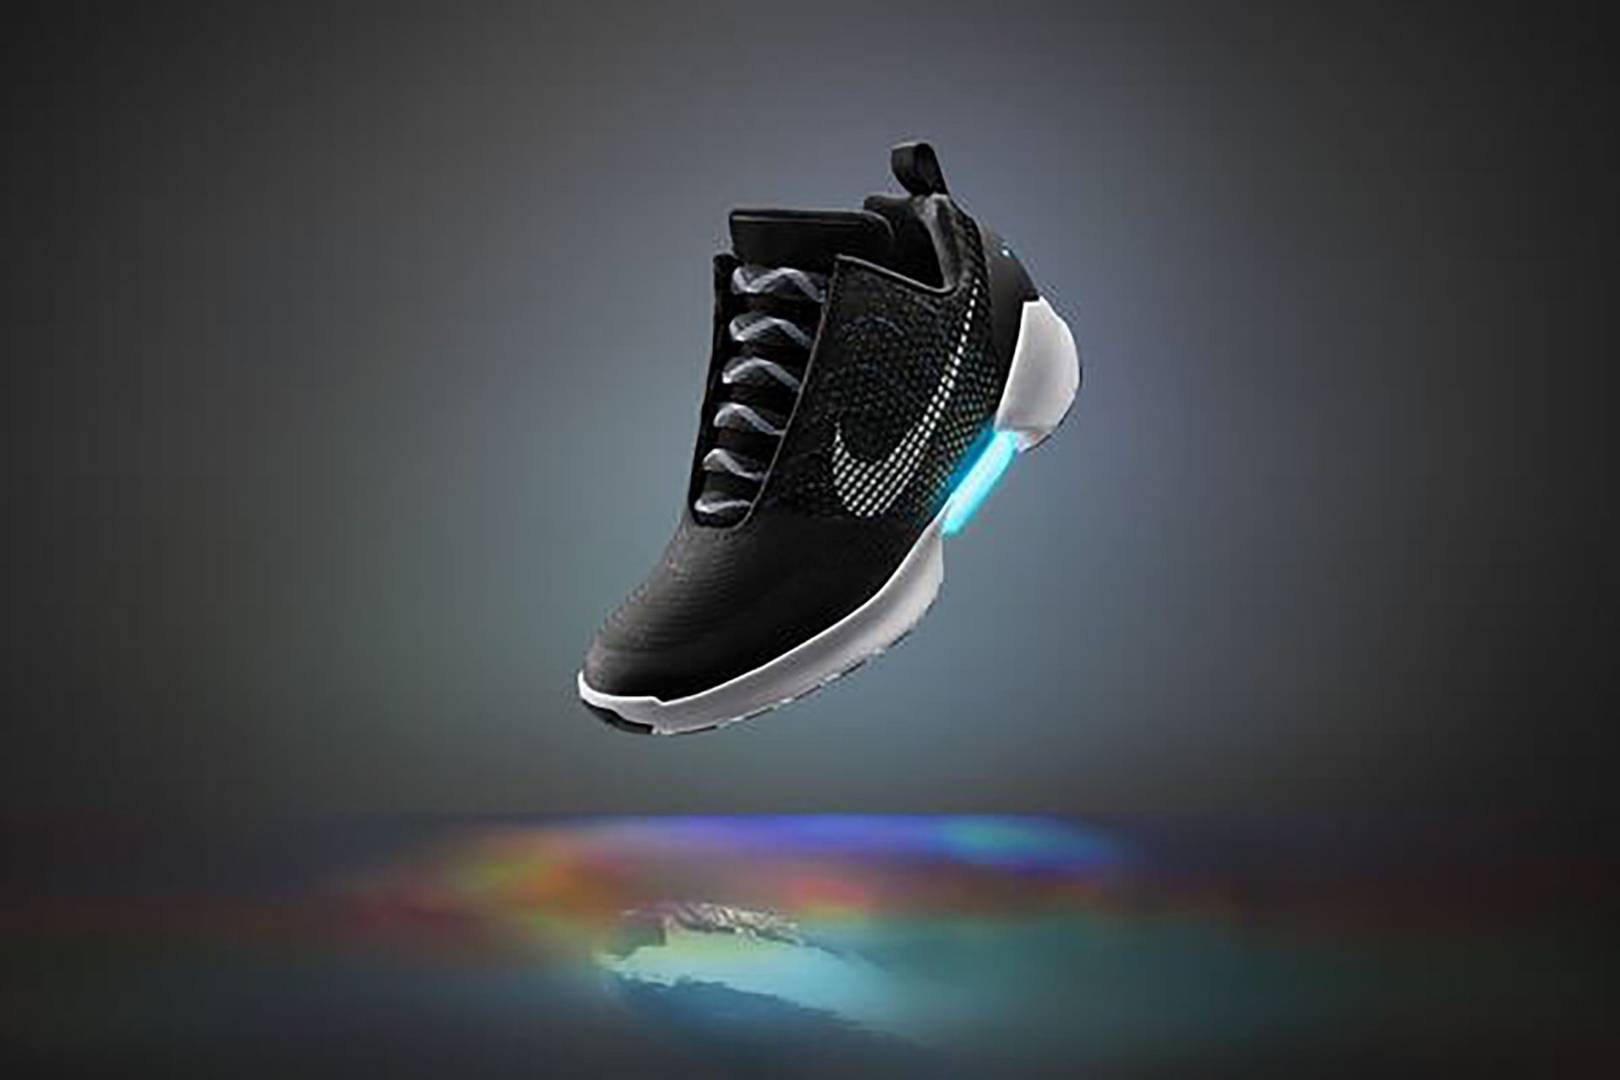 How Marty McFly's self-lacing trainers became a reality